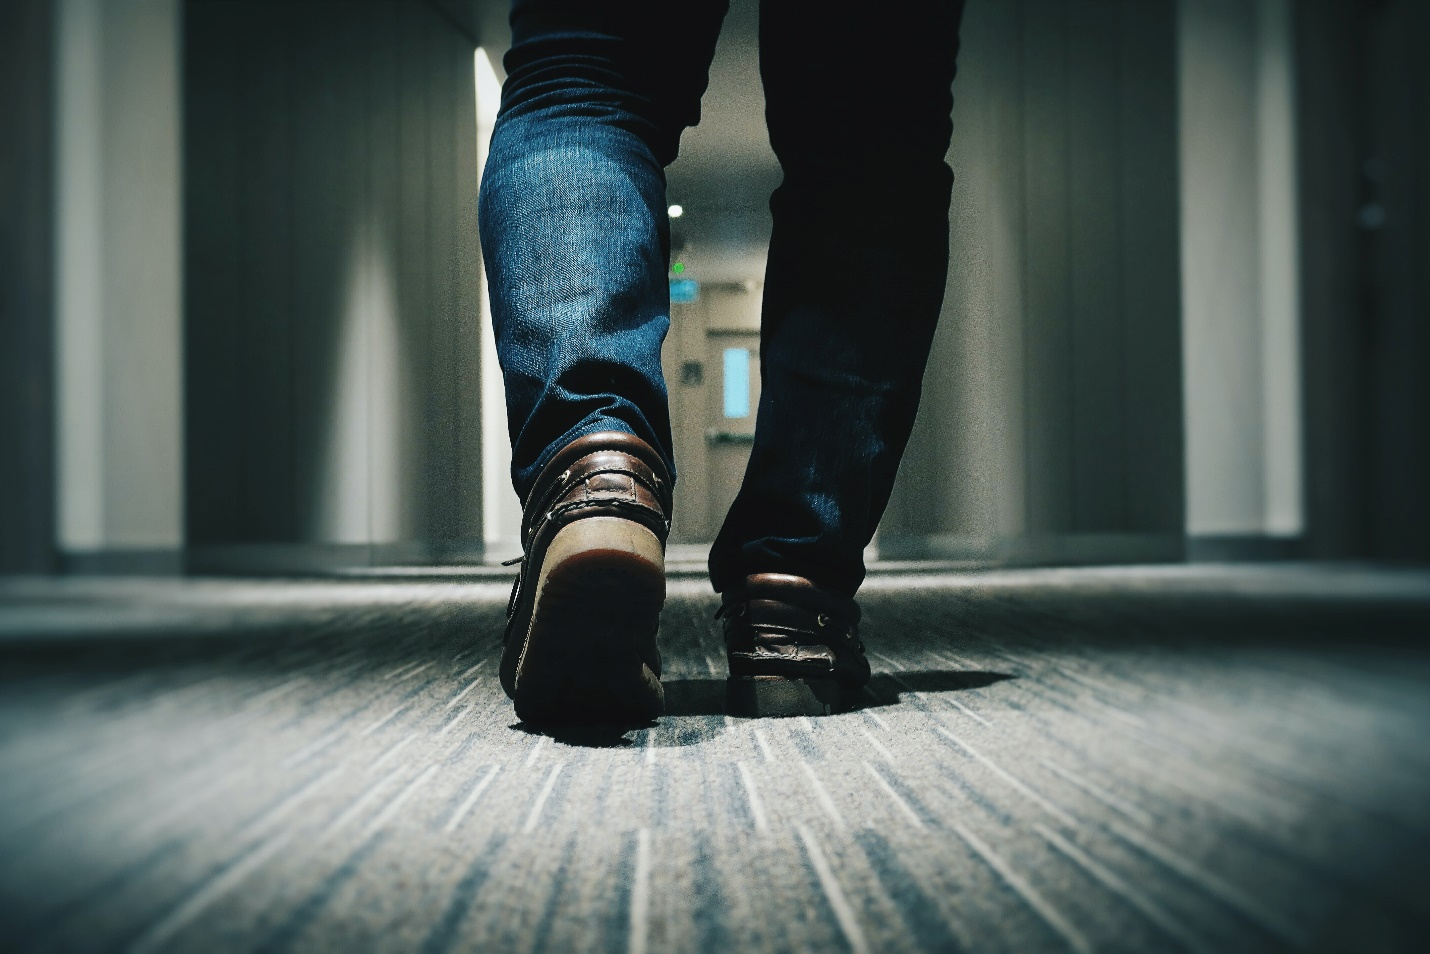 Person walking on a patterned carpet